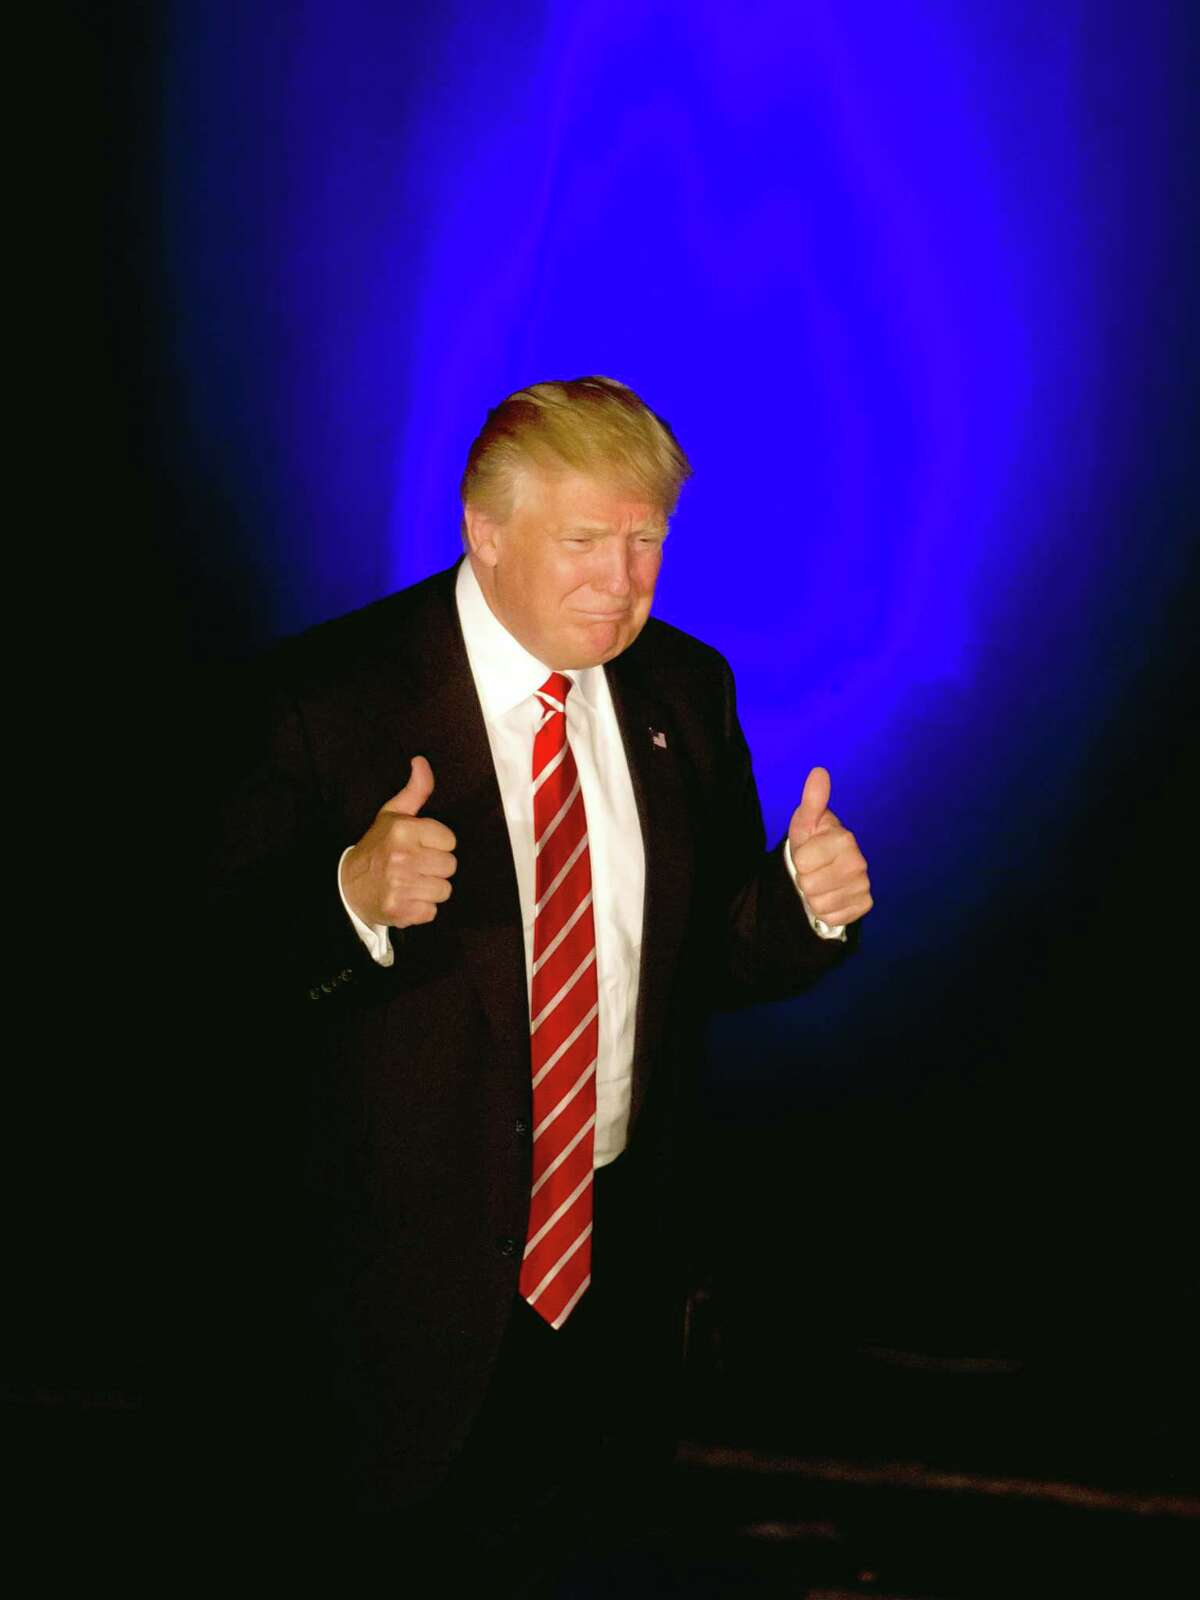 Republican presidential candidate Donald Trump gives a thumbs up as he walks on stage to speak at a rally at the Fox Theater Wednesday in Atlanta.